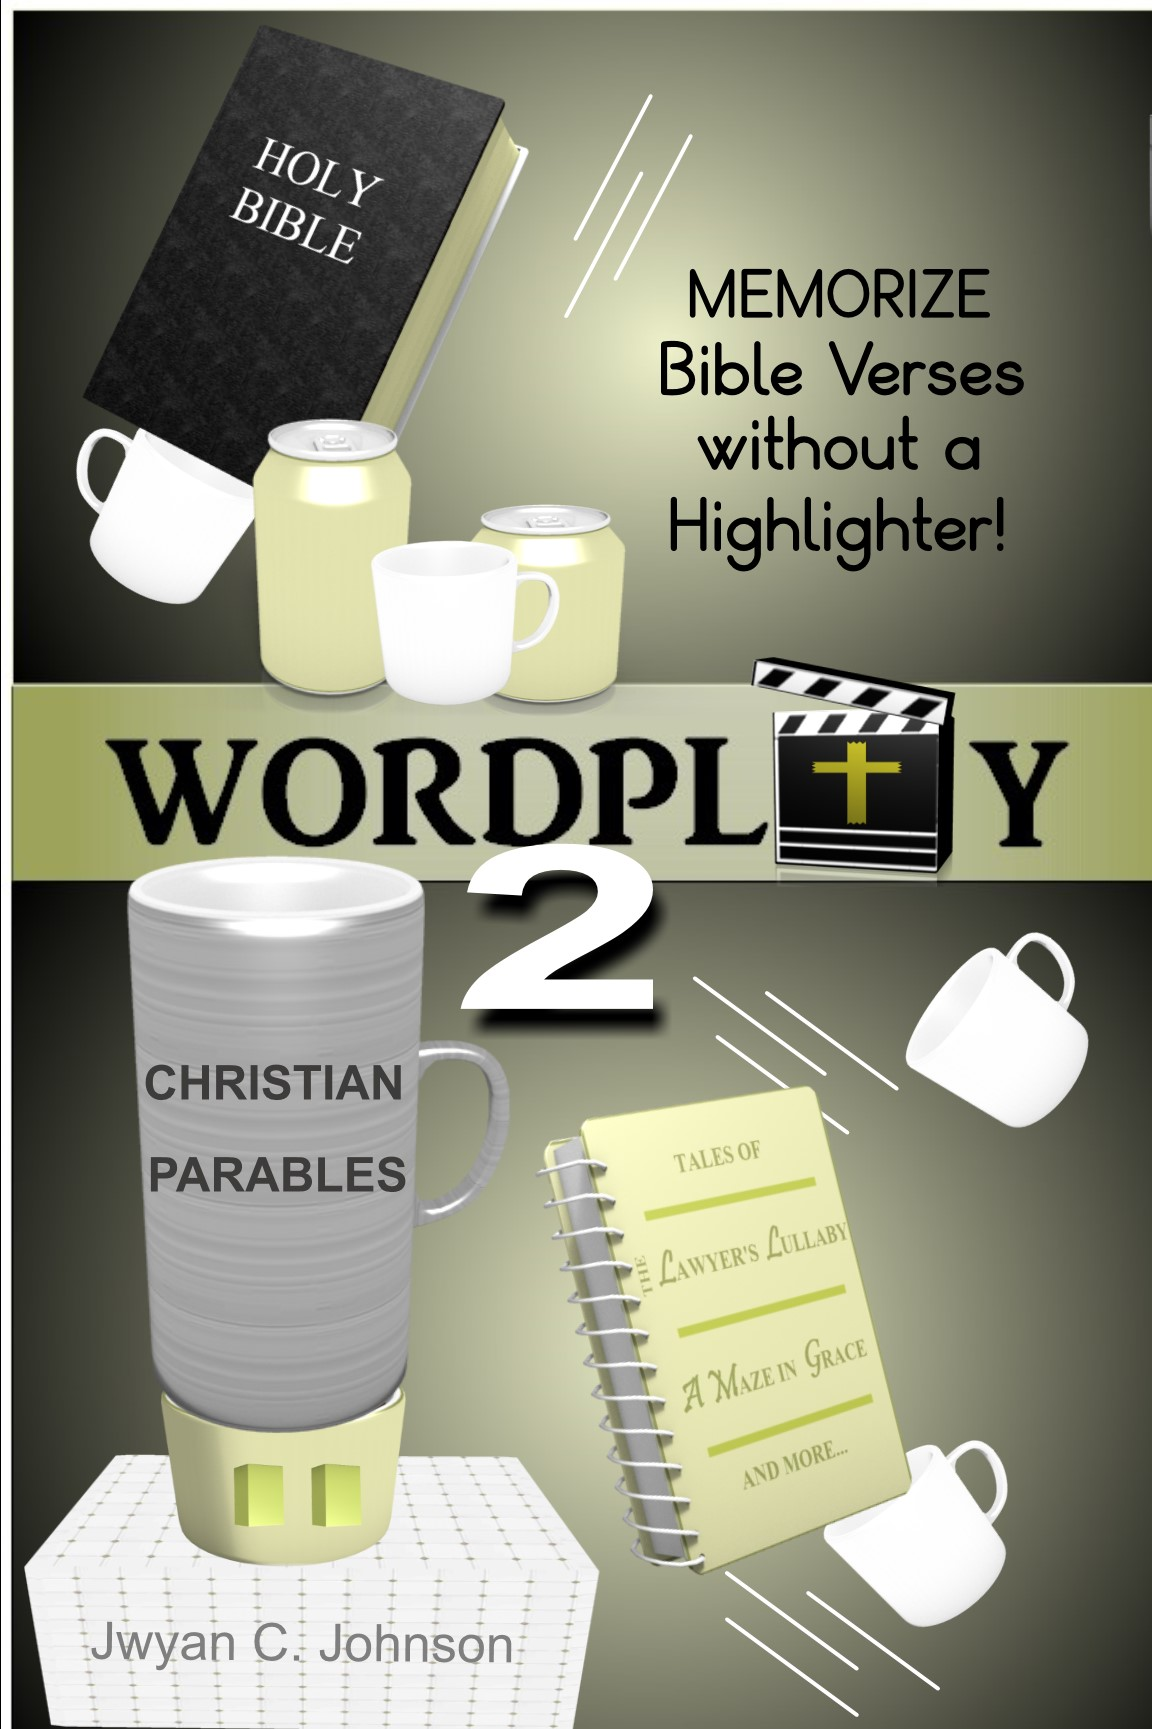 Wordplay (Christian Parables) in more ways than one!